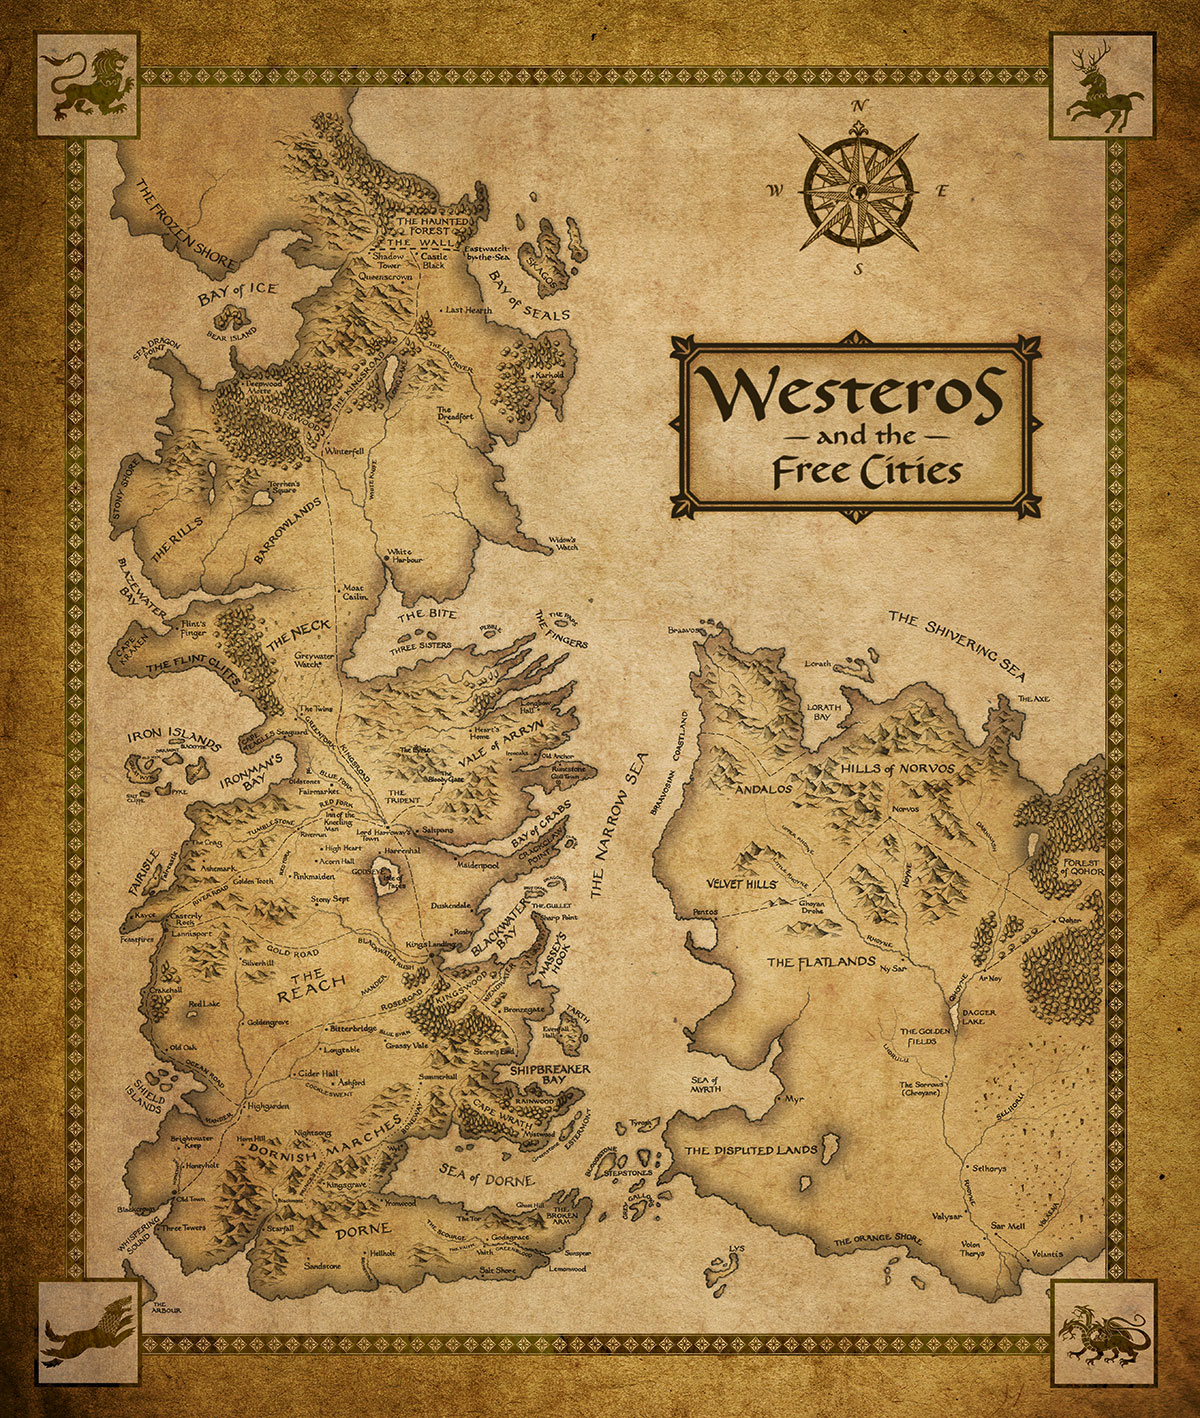 Check out this awsome hbo map of westeros and free cities this is currently the best map gumiabroncs Images